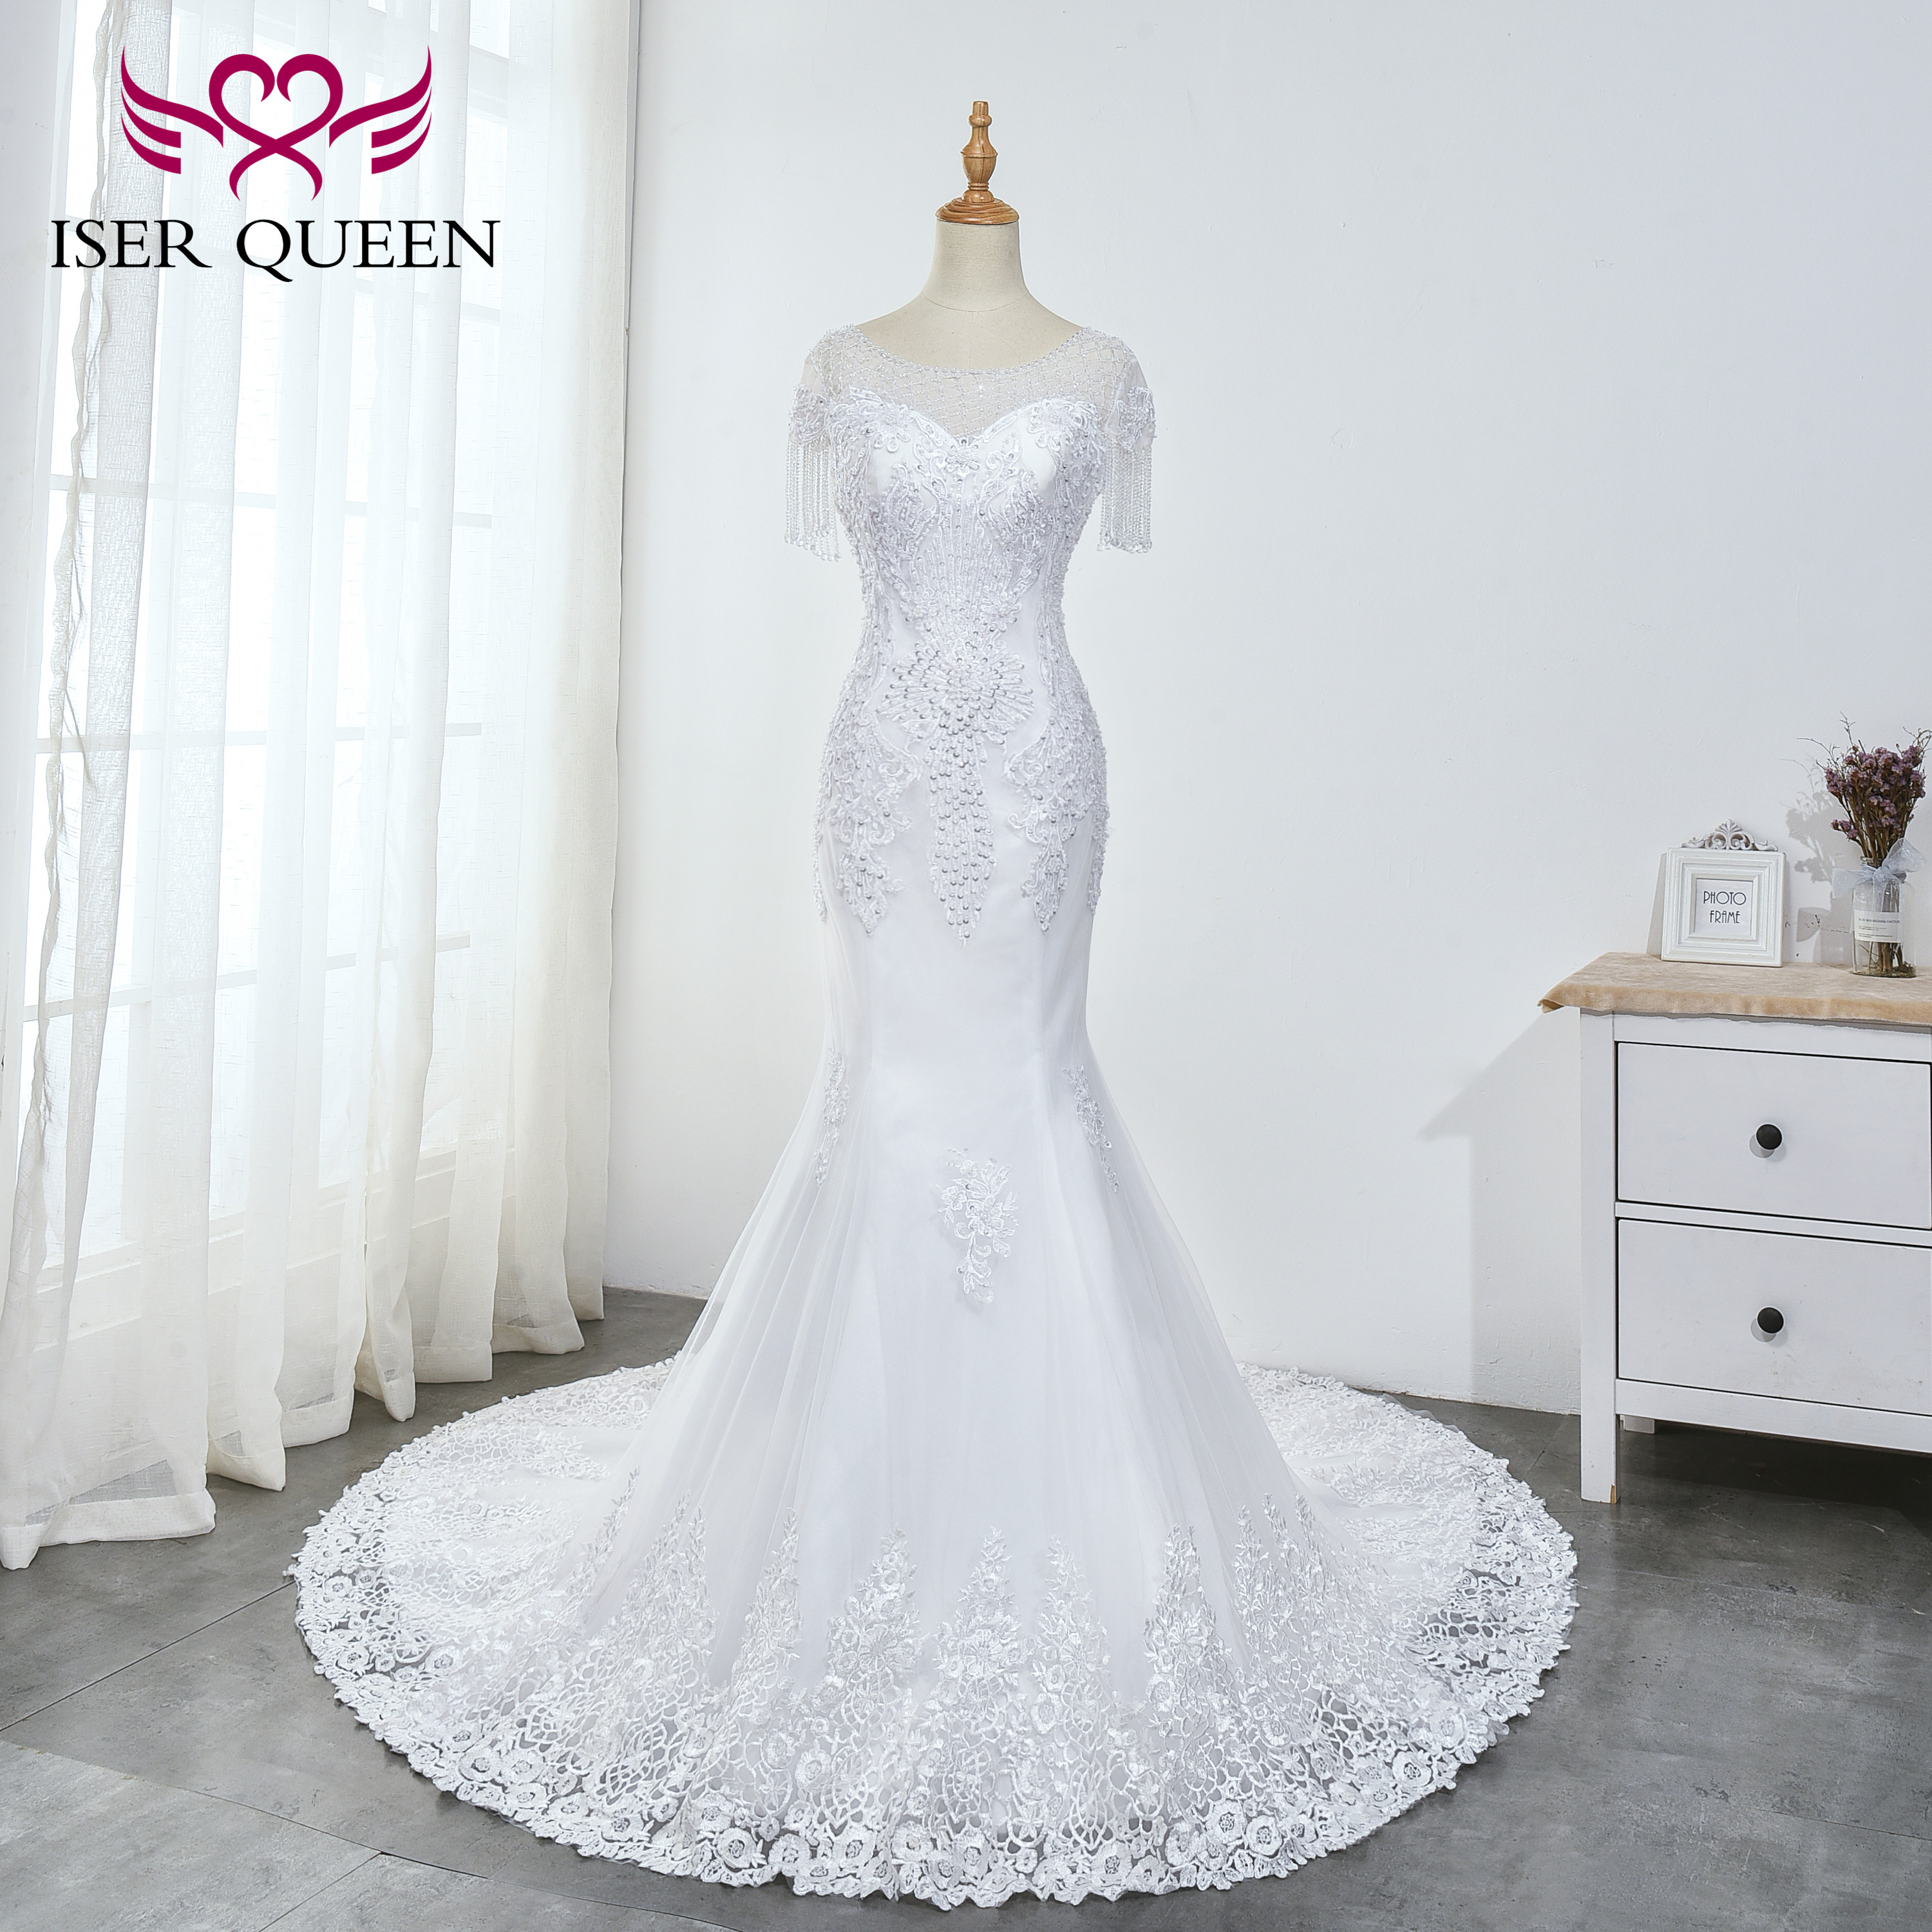 Illusion Short Sleeves Beading Pearls Crystal Mermaid Wedding Dresses 2020 New Pure White Elegant Embroidery Bridal Dress WX0035